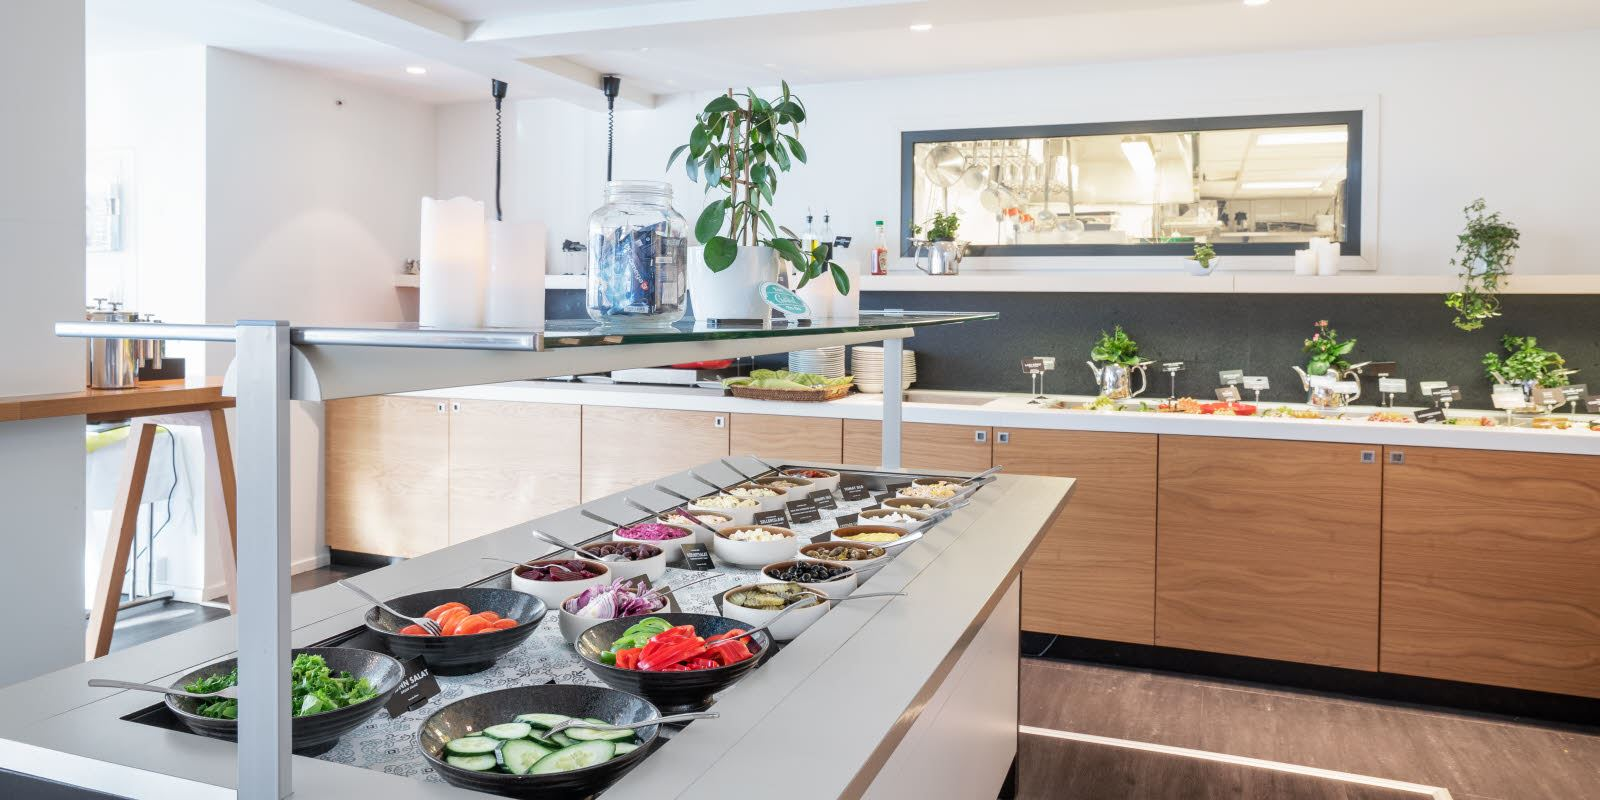 Frokostbuffet ved Thon Hotel Hammerfest